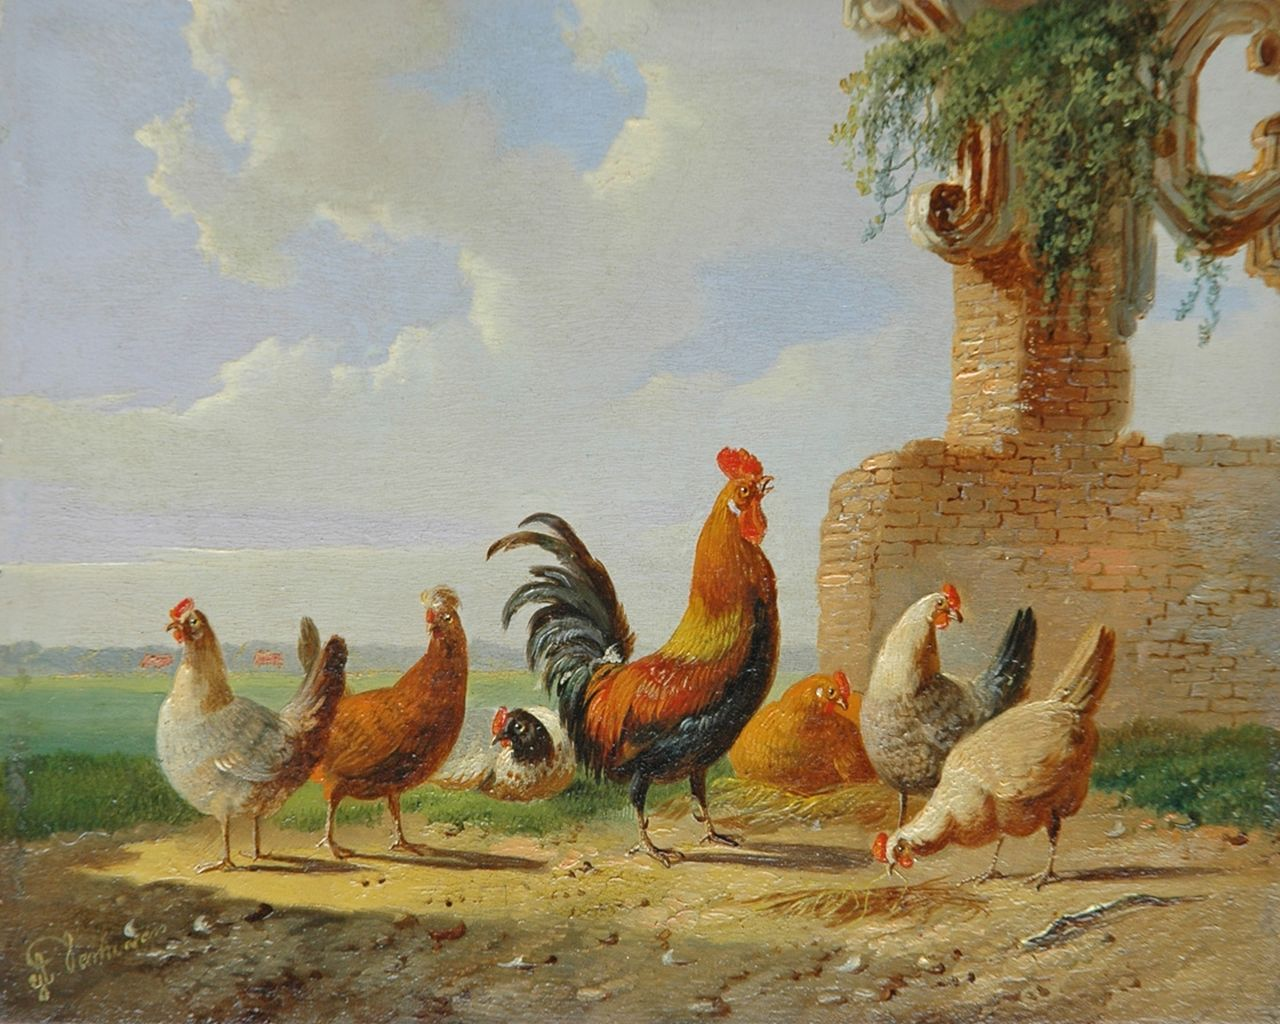 Verhoesen A.  | Albertus Verhoesen, A cock and his fowls in a summer landscape, oil on panel 13.6 x 17.0 cm, signed l.l.